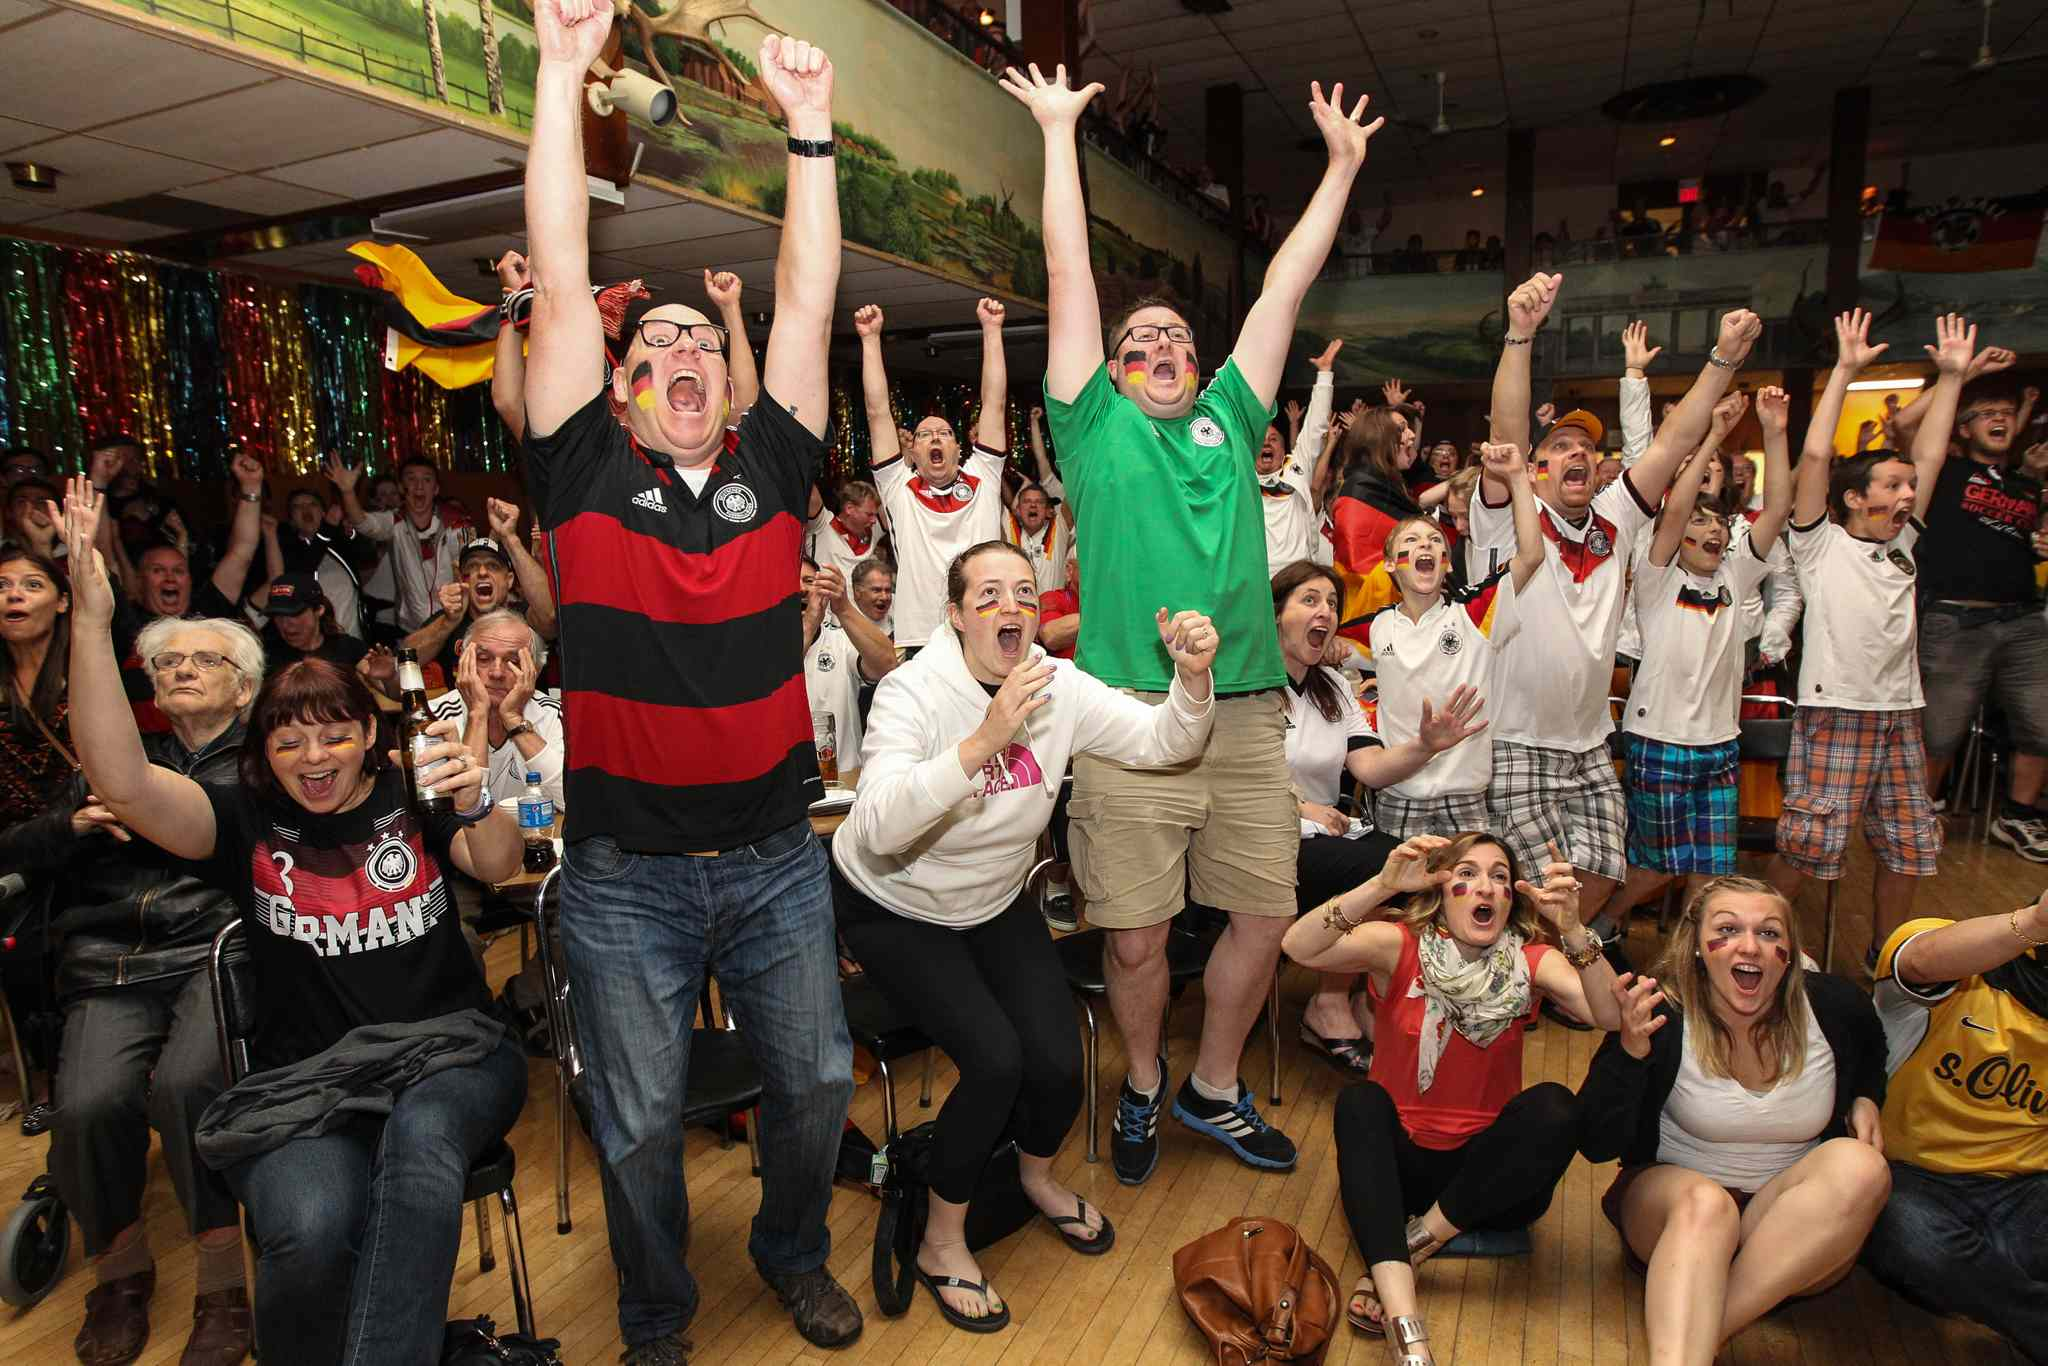 Fans celebrate Germanys World Cup win over Argentina at the German Society of Winnipeg Sunday afternoon. Nerves had been on edge until the lone, winning goal in extra time.